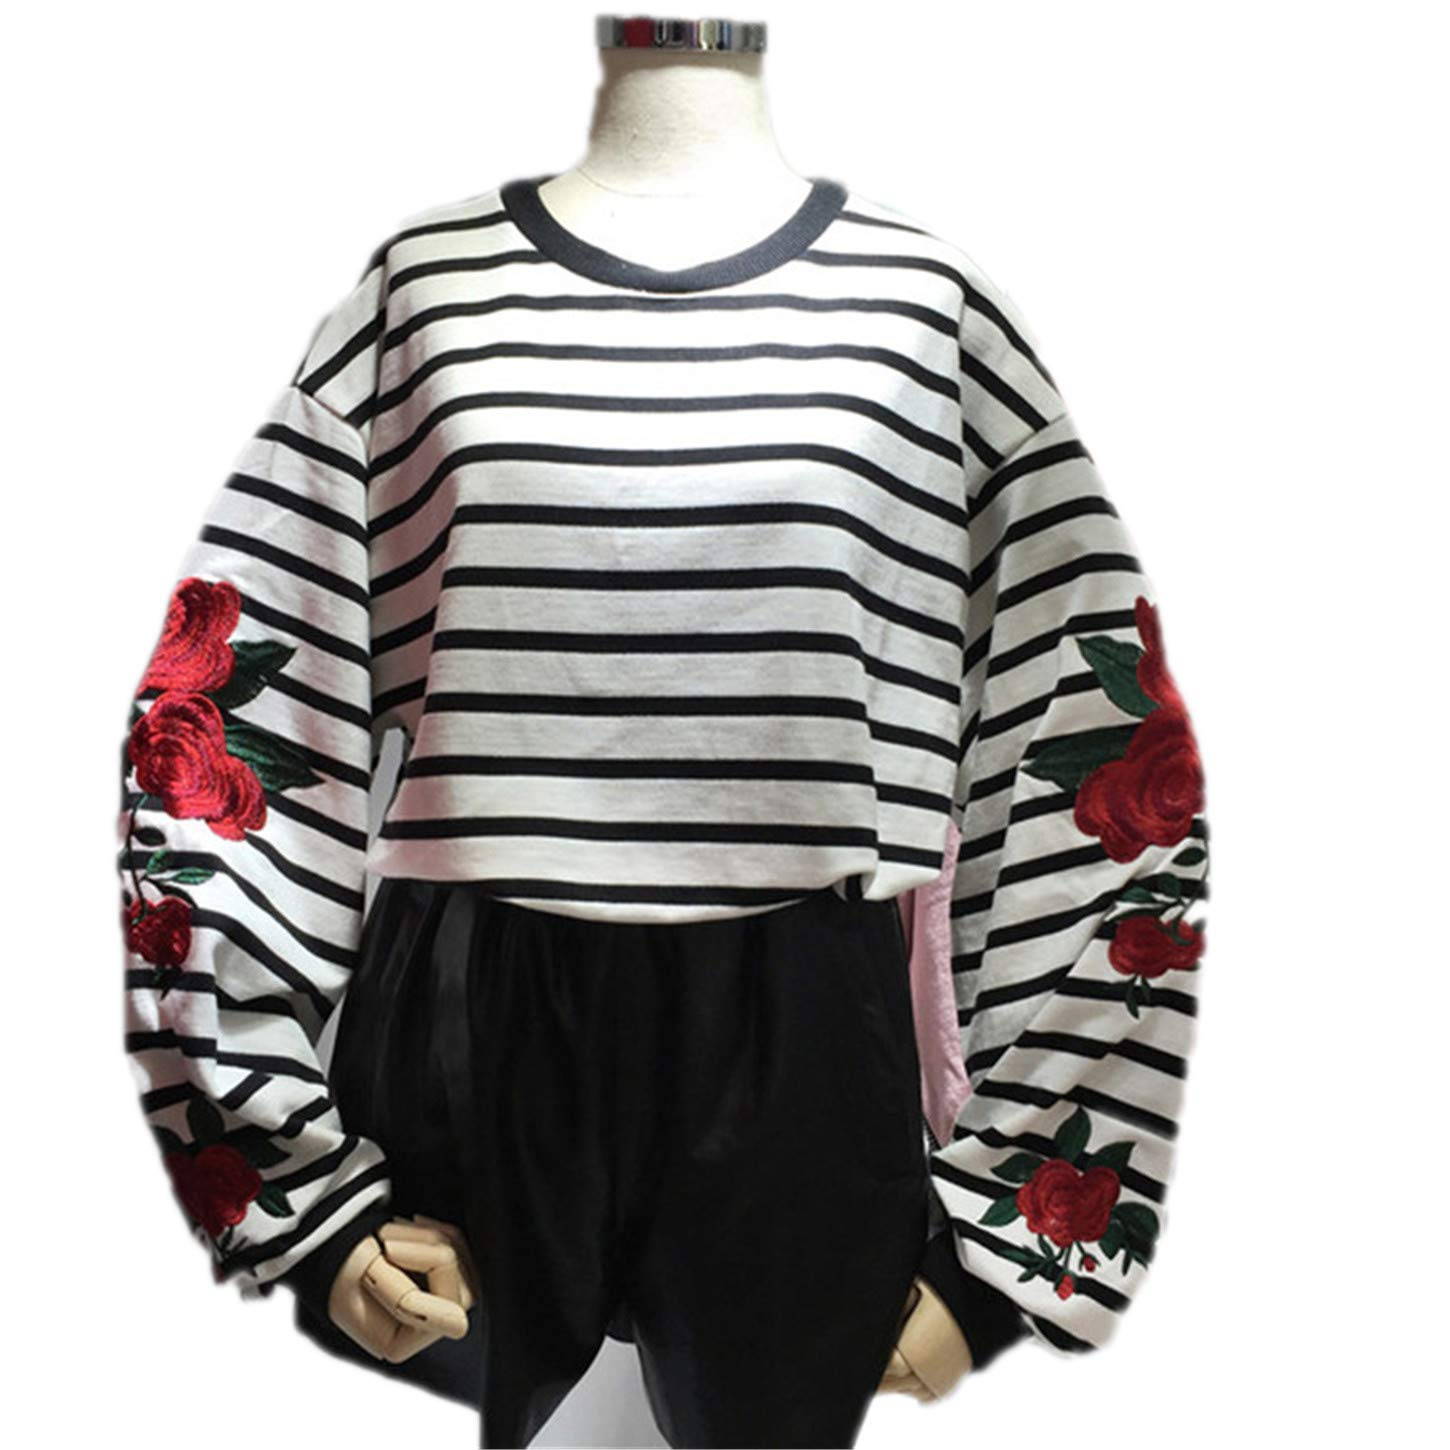 Amazon.com: Harajuku Hoodies Roses Embroidery Lantern Sleeve Loose Striped Women Sweatshirt Girl Vintage E: Clothing